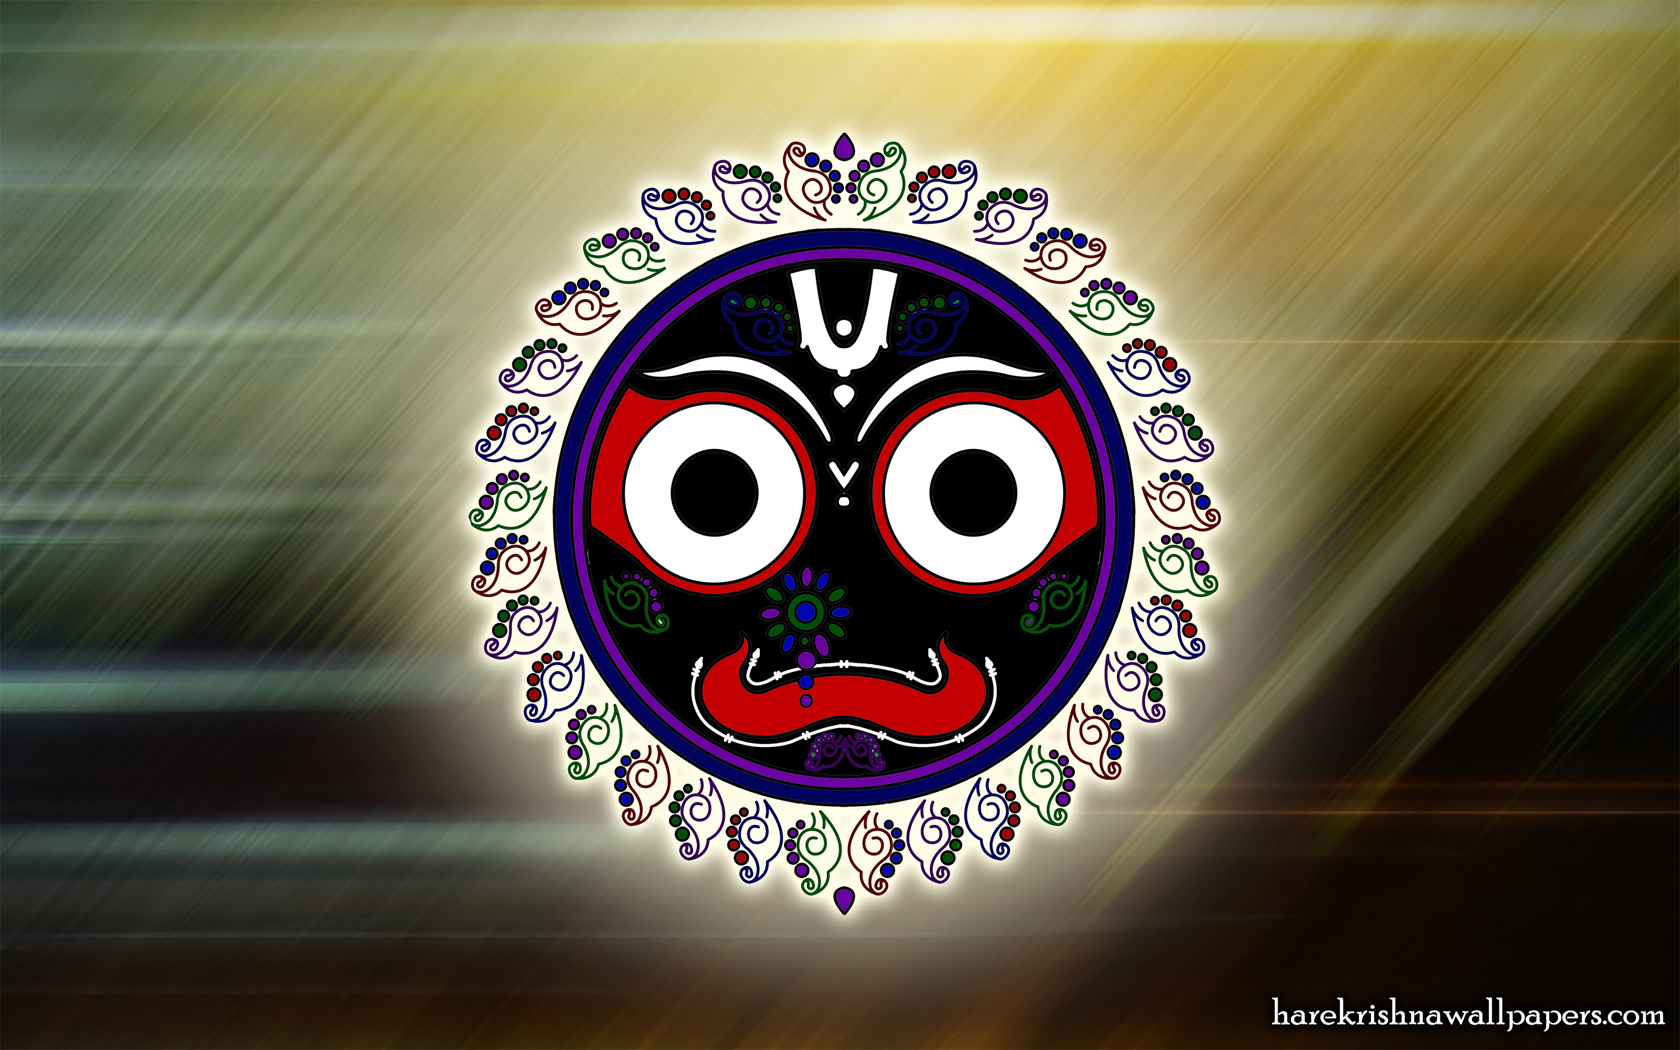 Jai Jagannath Wallpaper (037) Size 1680x1050 Download